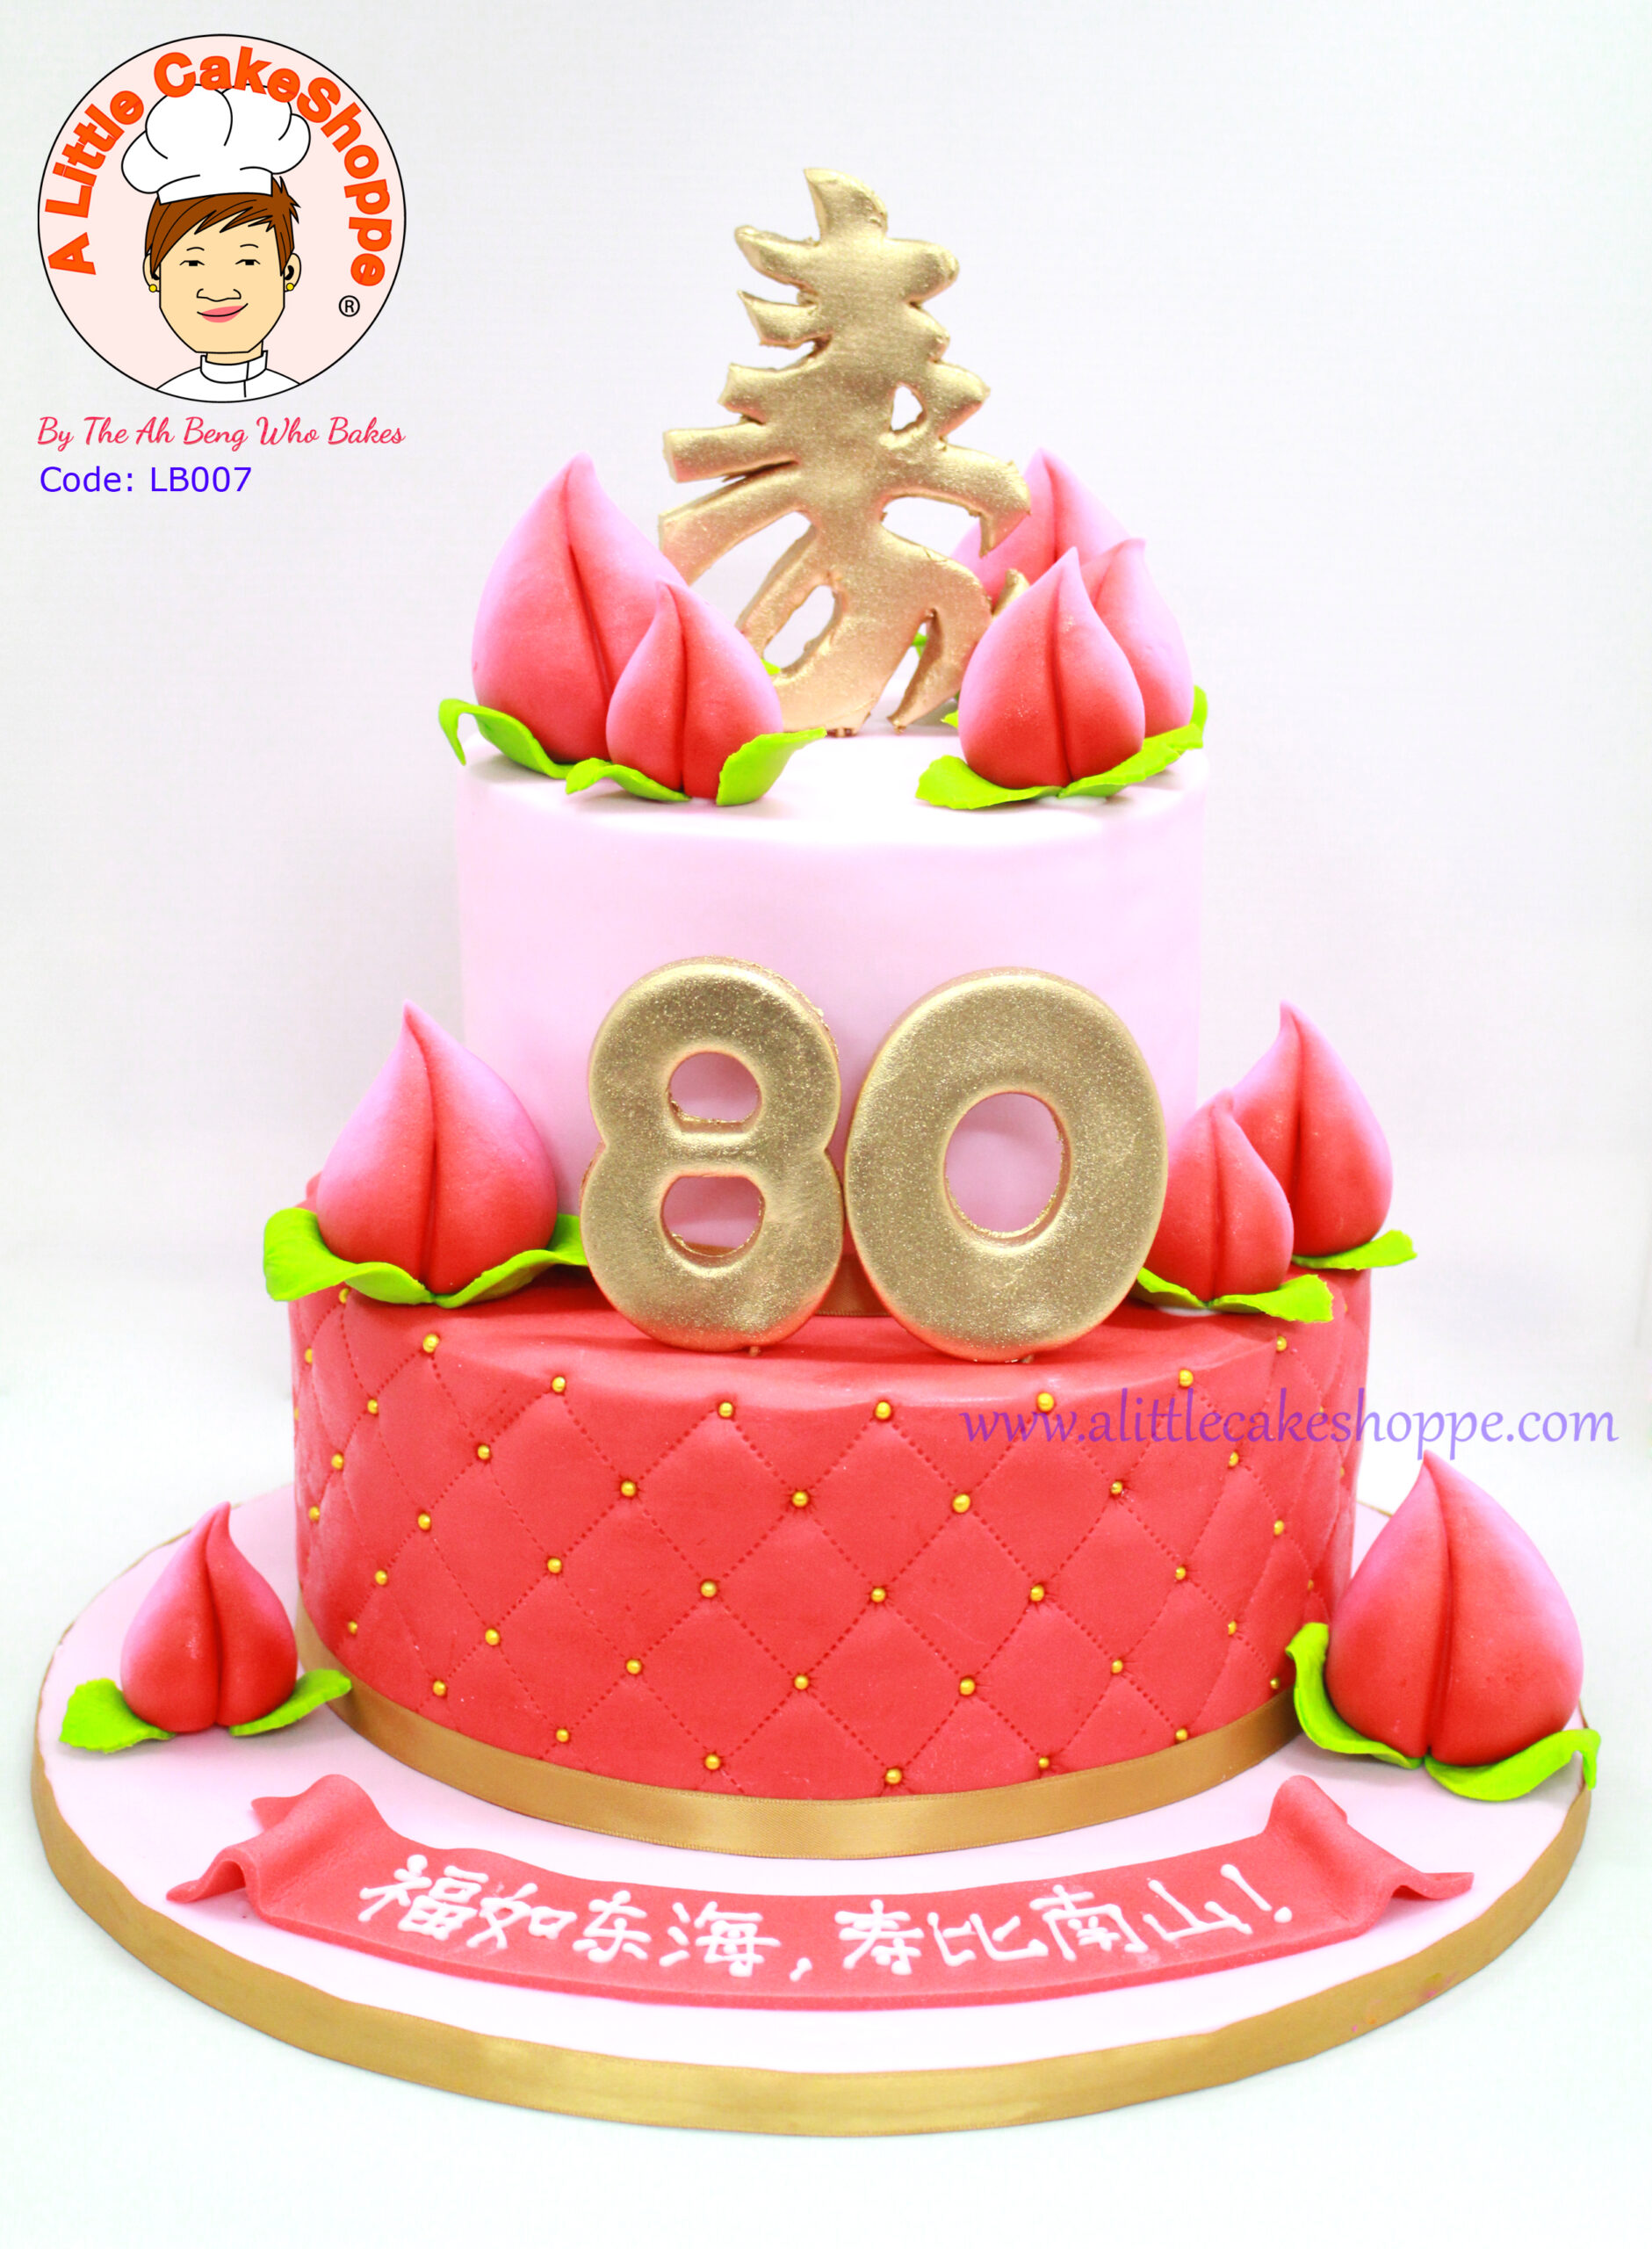 Best Customised Cake Shop Singapore custom cake 2D 3D birthday cake cupcakes desserts wedding corporate events anniversary 1st birthday 21st birthday fondant fresh cream buttercream cakes alittlecakeshoppe a little cake shoppe compliments review singapore bakers SG cake shop cakeshop ah beng who bakes longevity